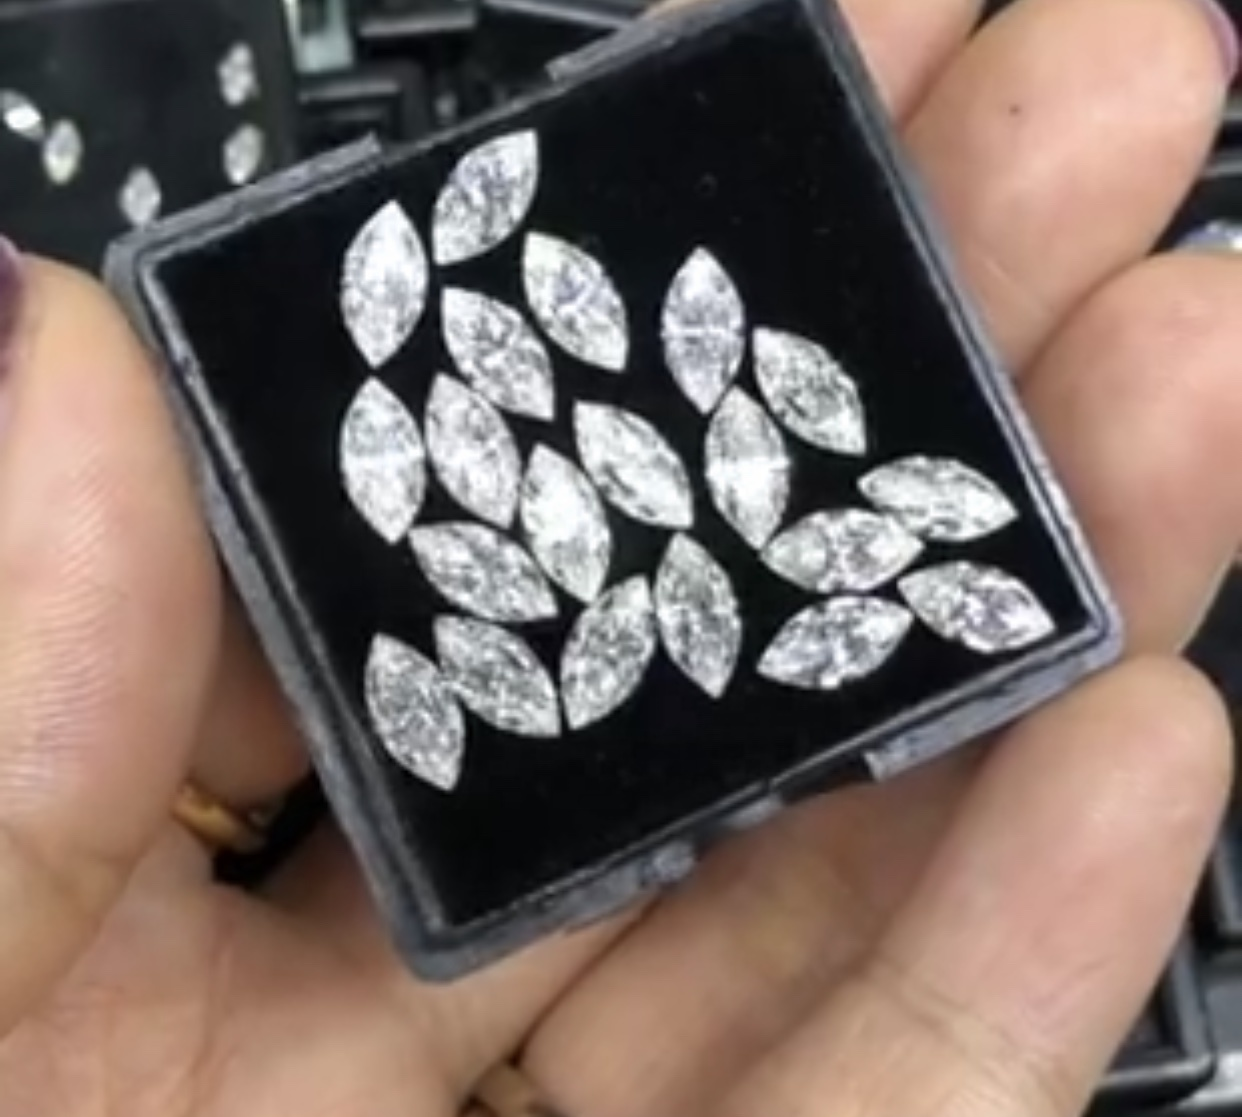 Best Quality DEF VVS Moissanite Diamonds 3mm to 5mm Marquis Cut use for jewelry making